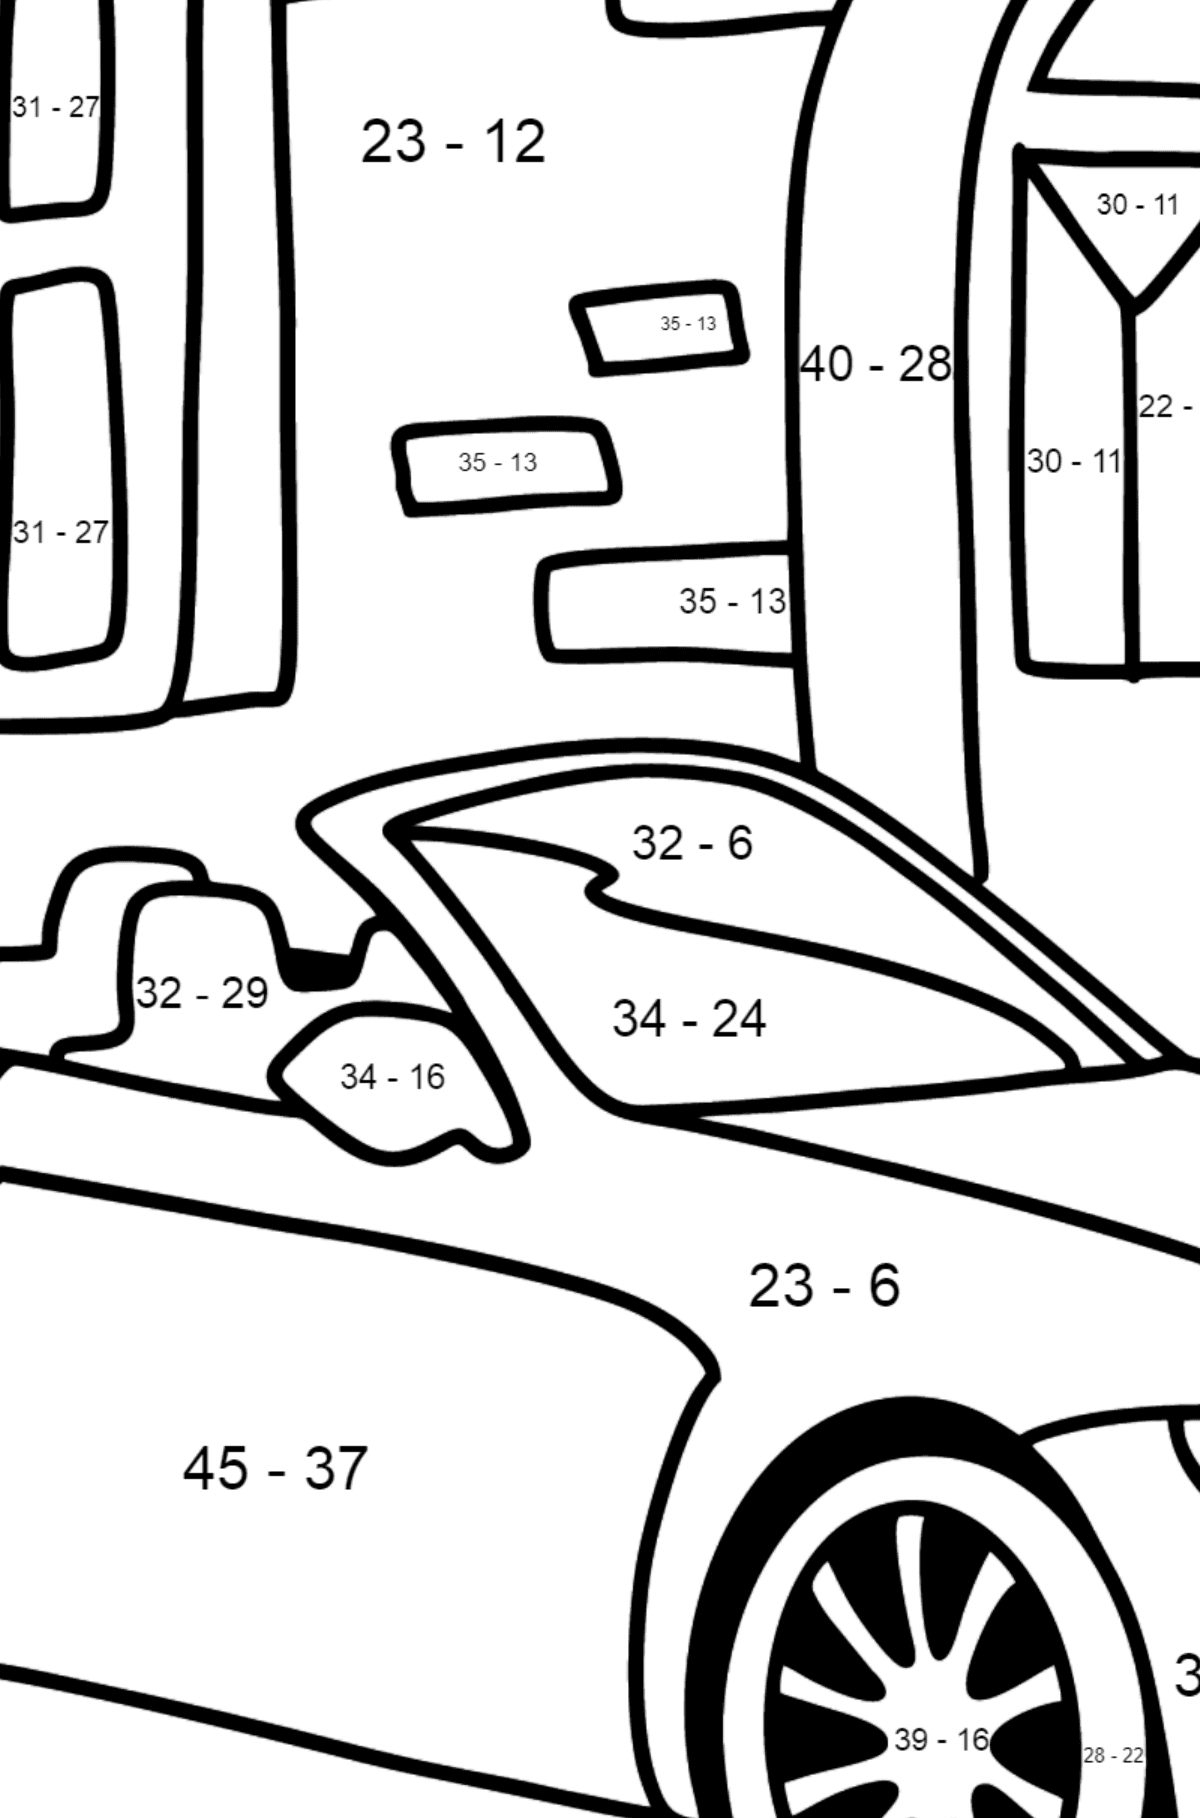 BMW Convertible coloring page - Math Coloring - Subtraction for Kids